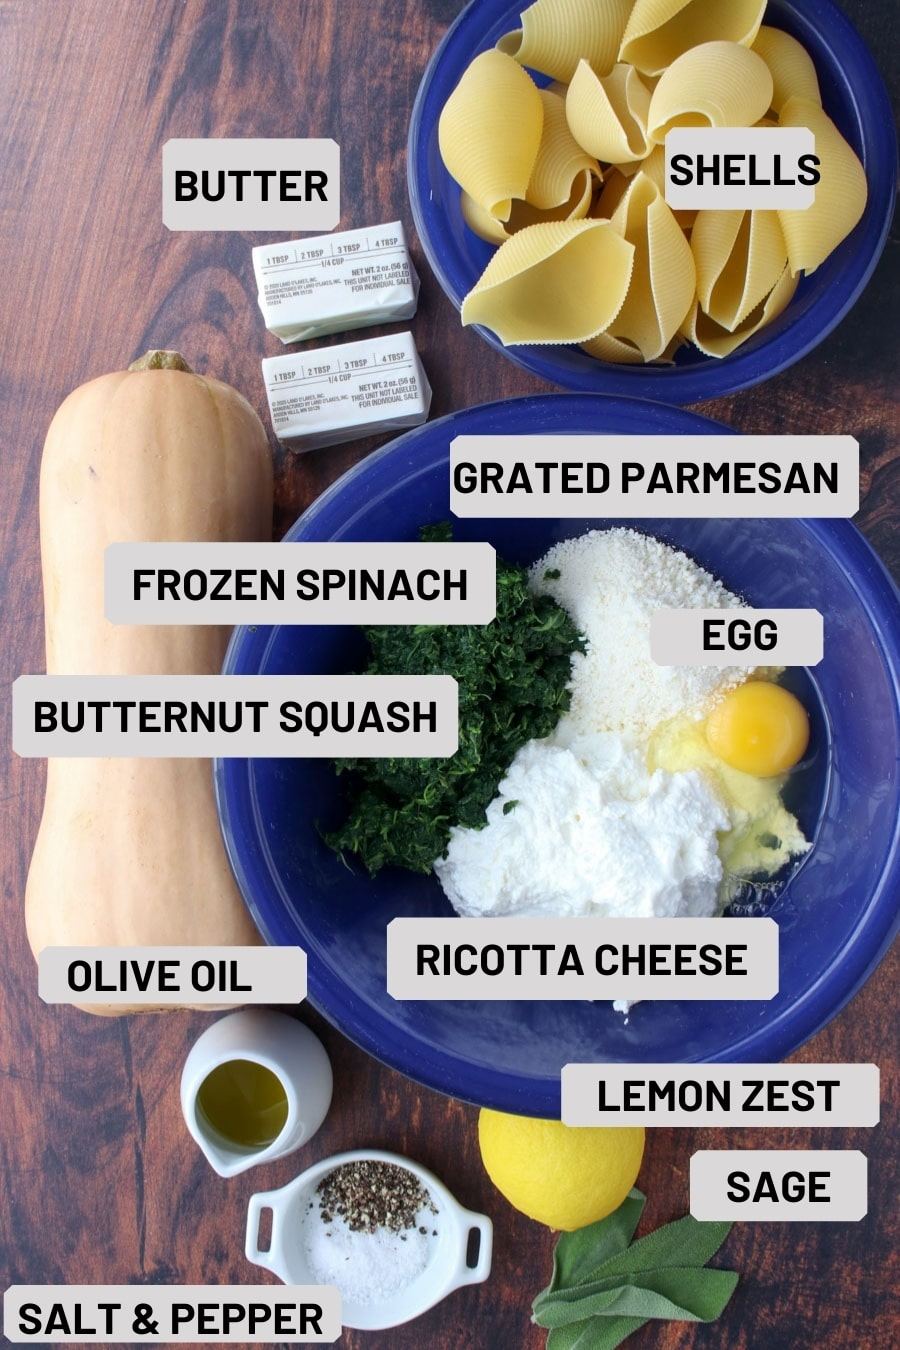 cookie sheet with all of the ingredients needed to make butternut squash stuffed shells